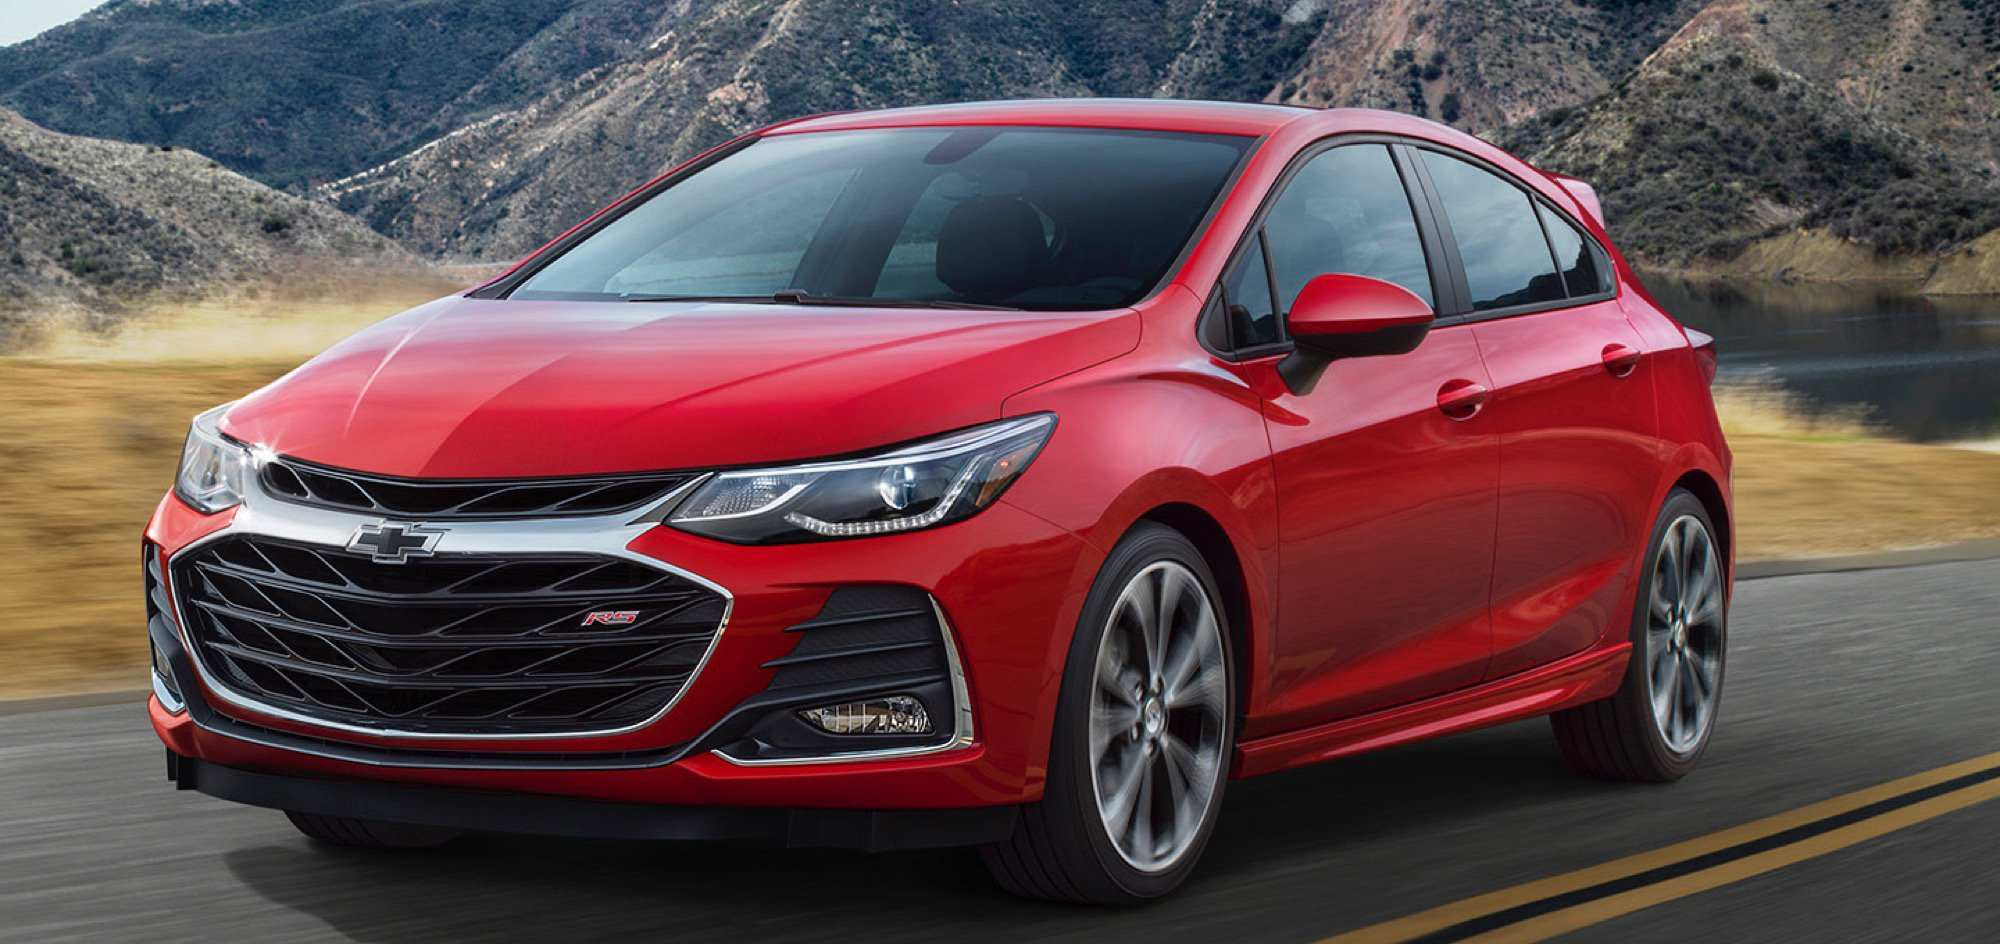 87 The 2020 Chevrolet Cruze Style with 2020 Chevrolet Cruze